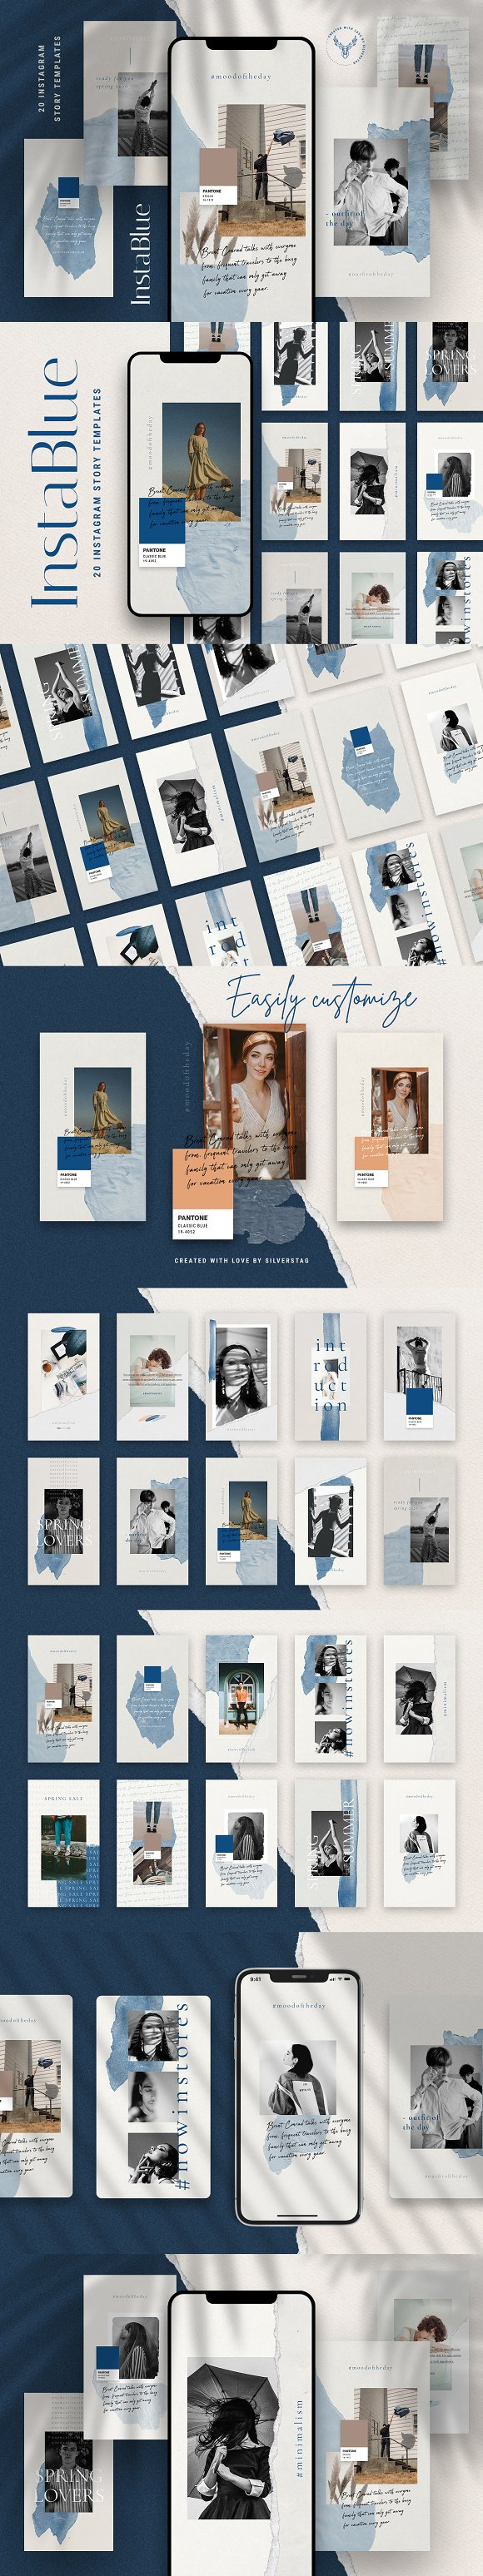 Ultimate Instagram Bundle + Updates in Instagram Templates - product preview 24